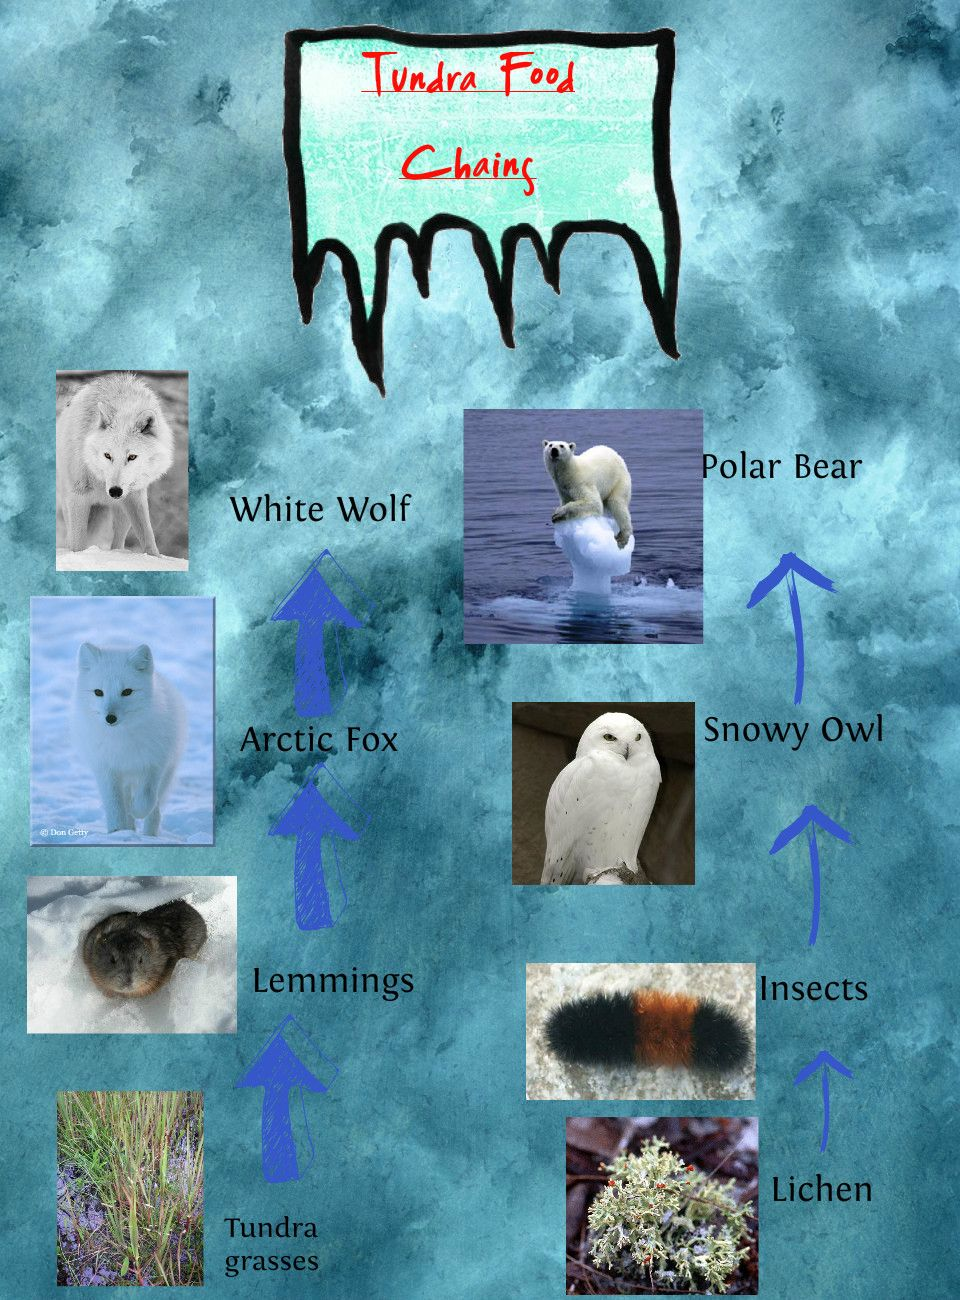 Ashley S Tundra Food Chain Publish With Glogster Food Chain Tundra Biology Projects [ 1300 x 960 Pixel ]